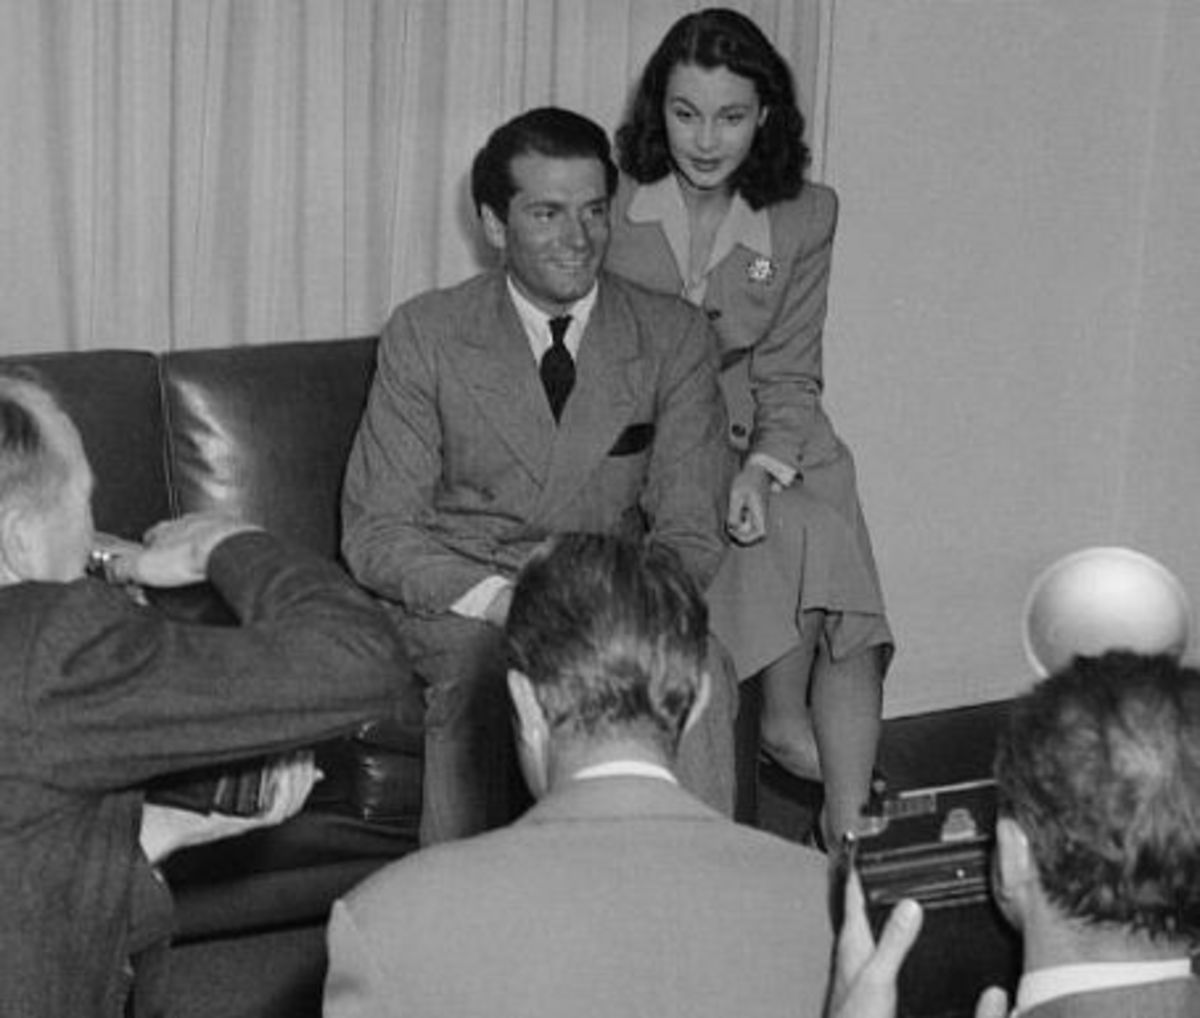 The Press Conference, 1940